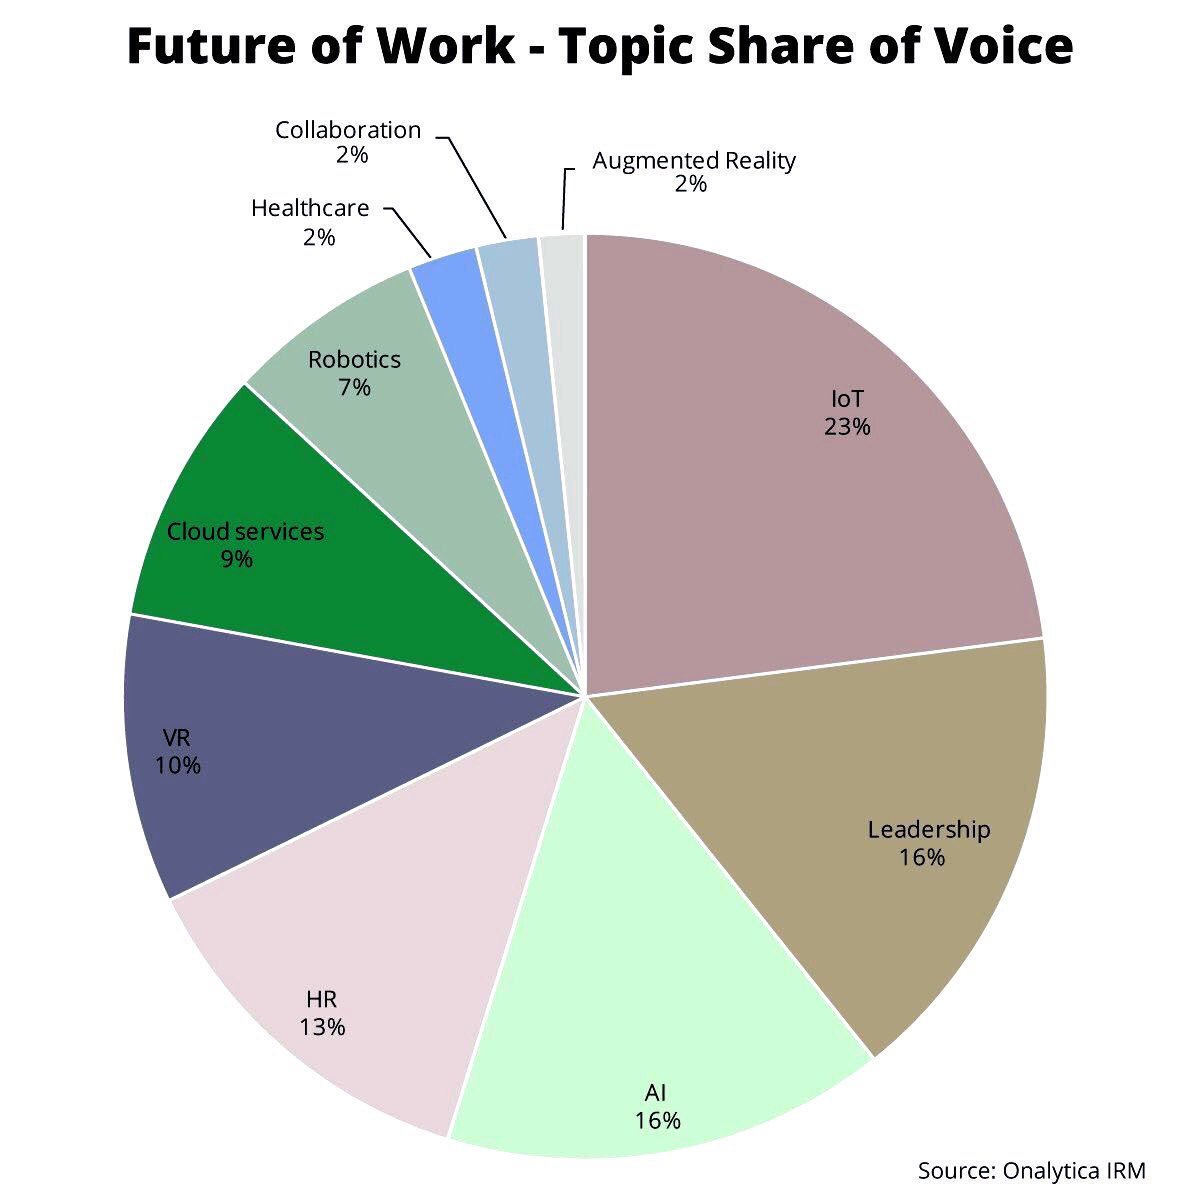 Top 8 #FutureofWork Themes: #IoT as first ranked! #startup #Leadership #AI #HR #Cloud #VR #remotework @evankirstel<br>http://pic.twitter.com/0YLZt9XmGH